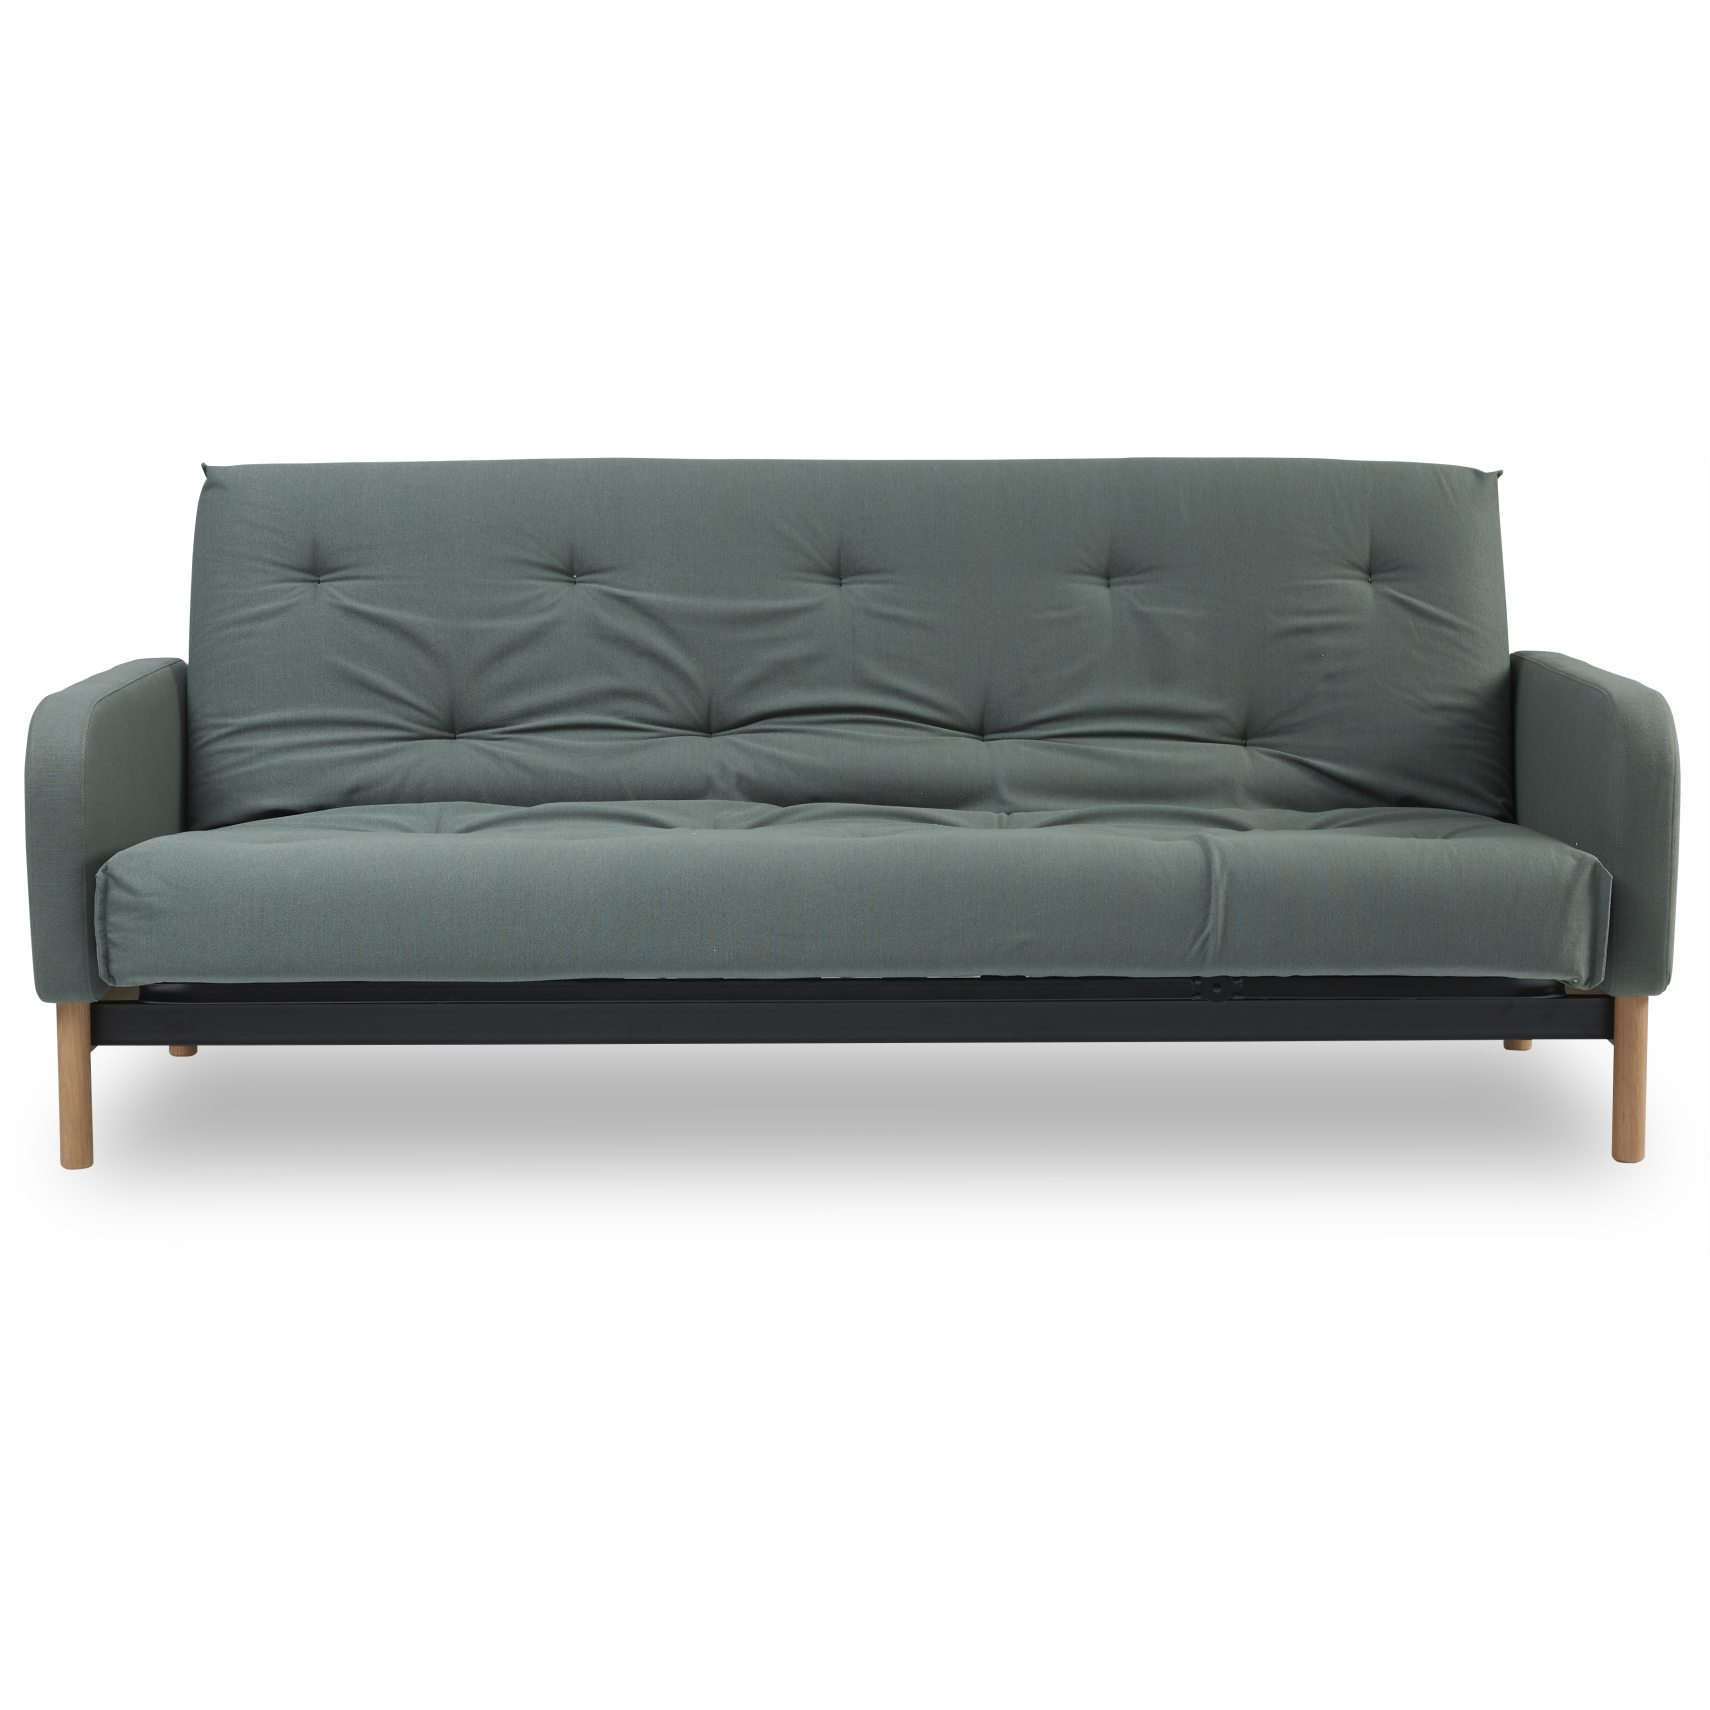 Innovation Living - Ronia Sovesofa - Sovesofa